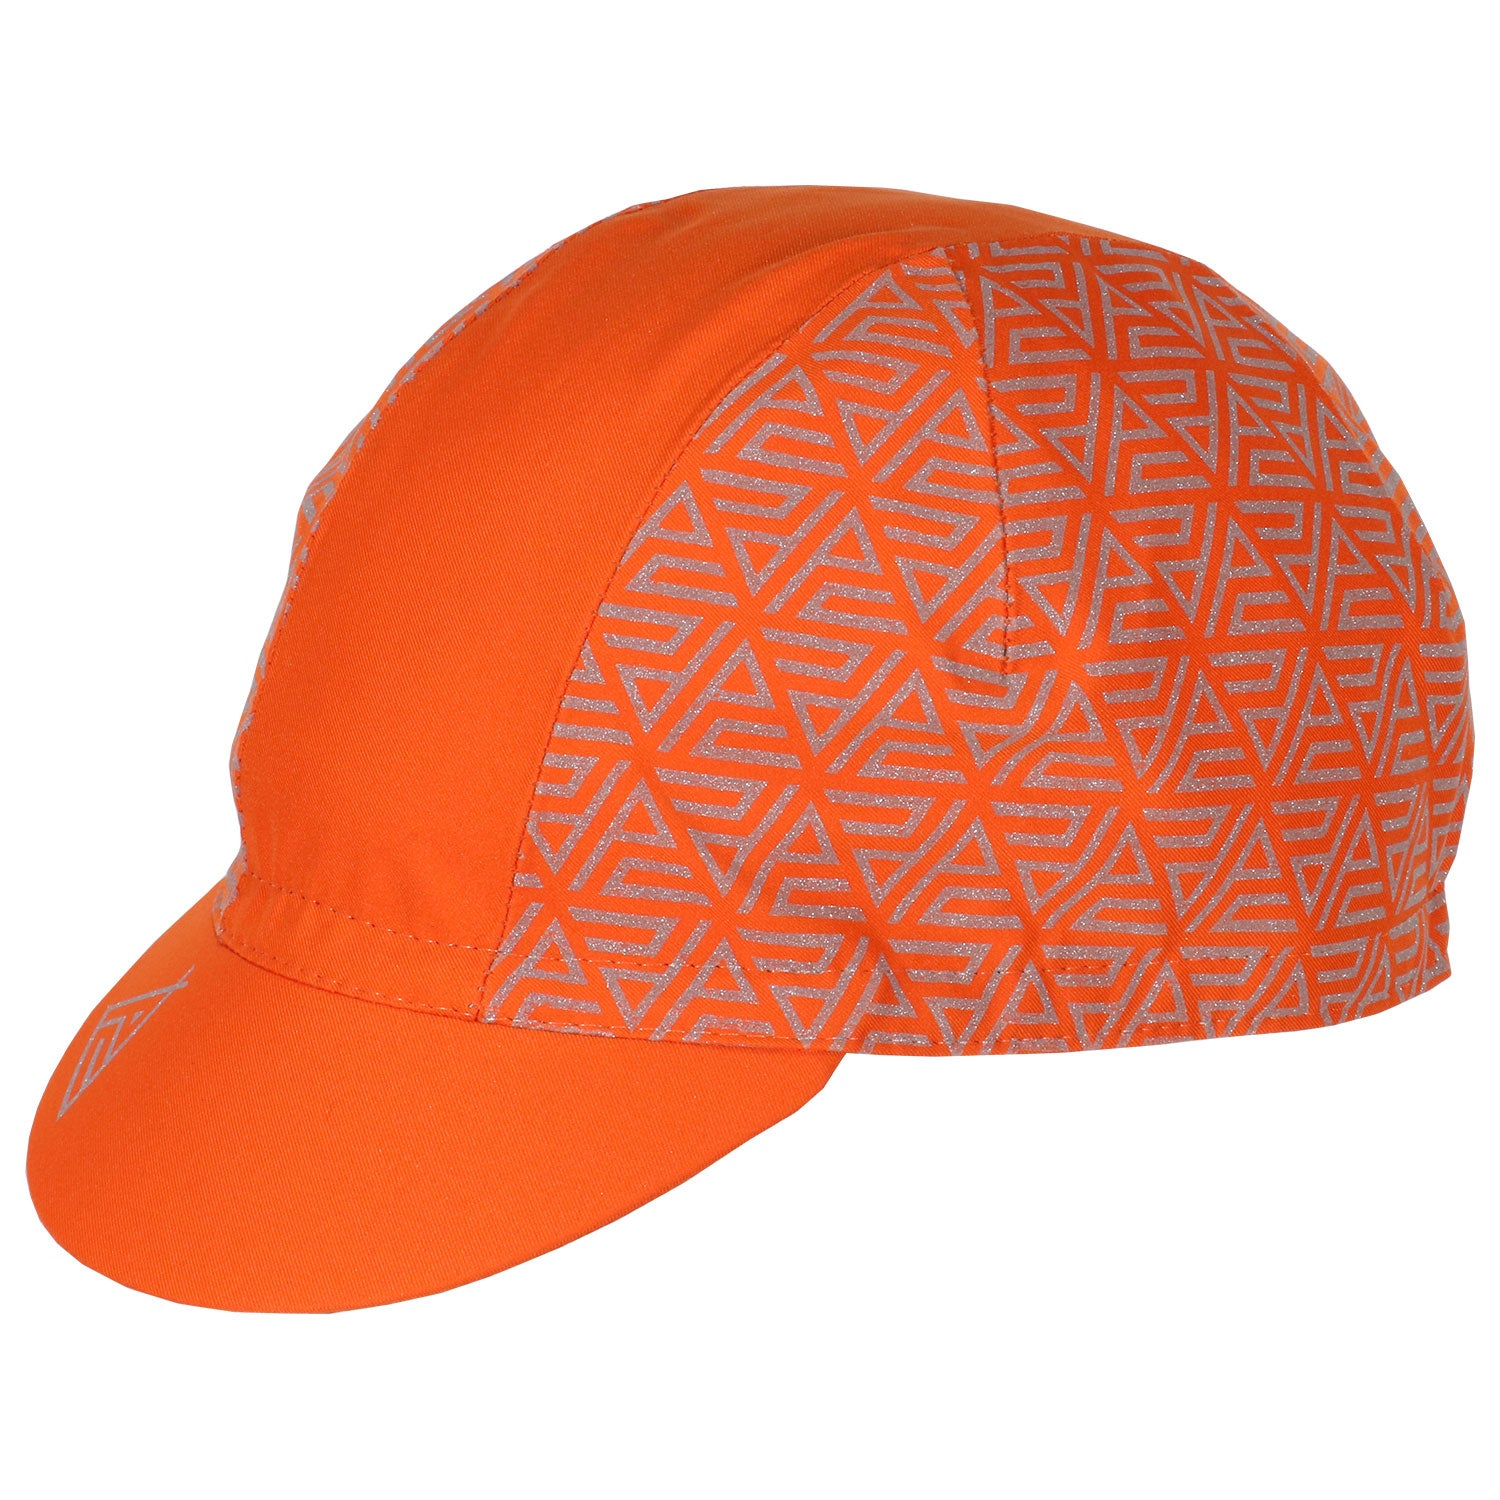 Prendas Lisboa Rain Orange Cycling Cap